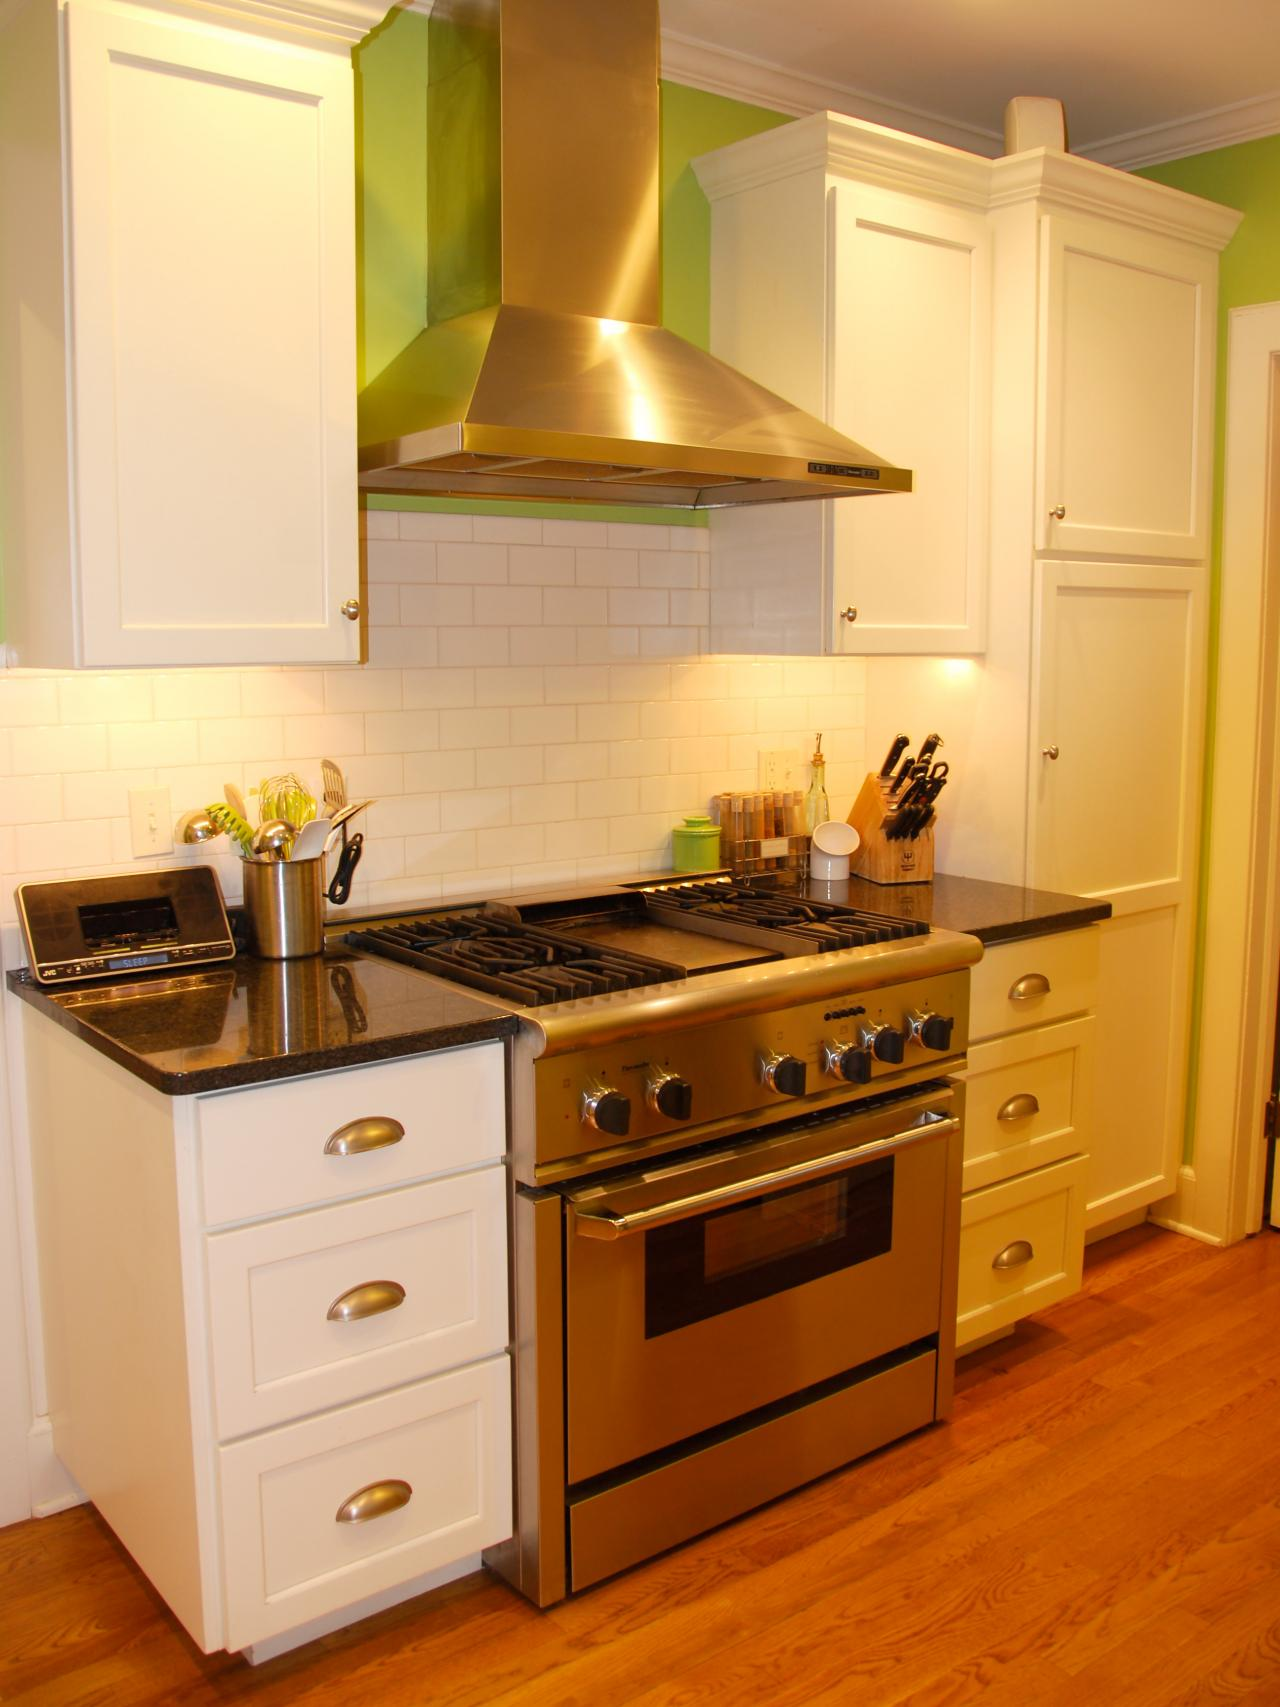 Kitchen Ideas For Small Kitchens Paint Colors For Small Kitchens Pictures & Ideas From Hgtv  Hgtv